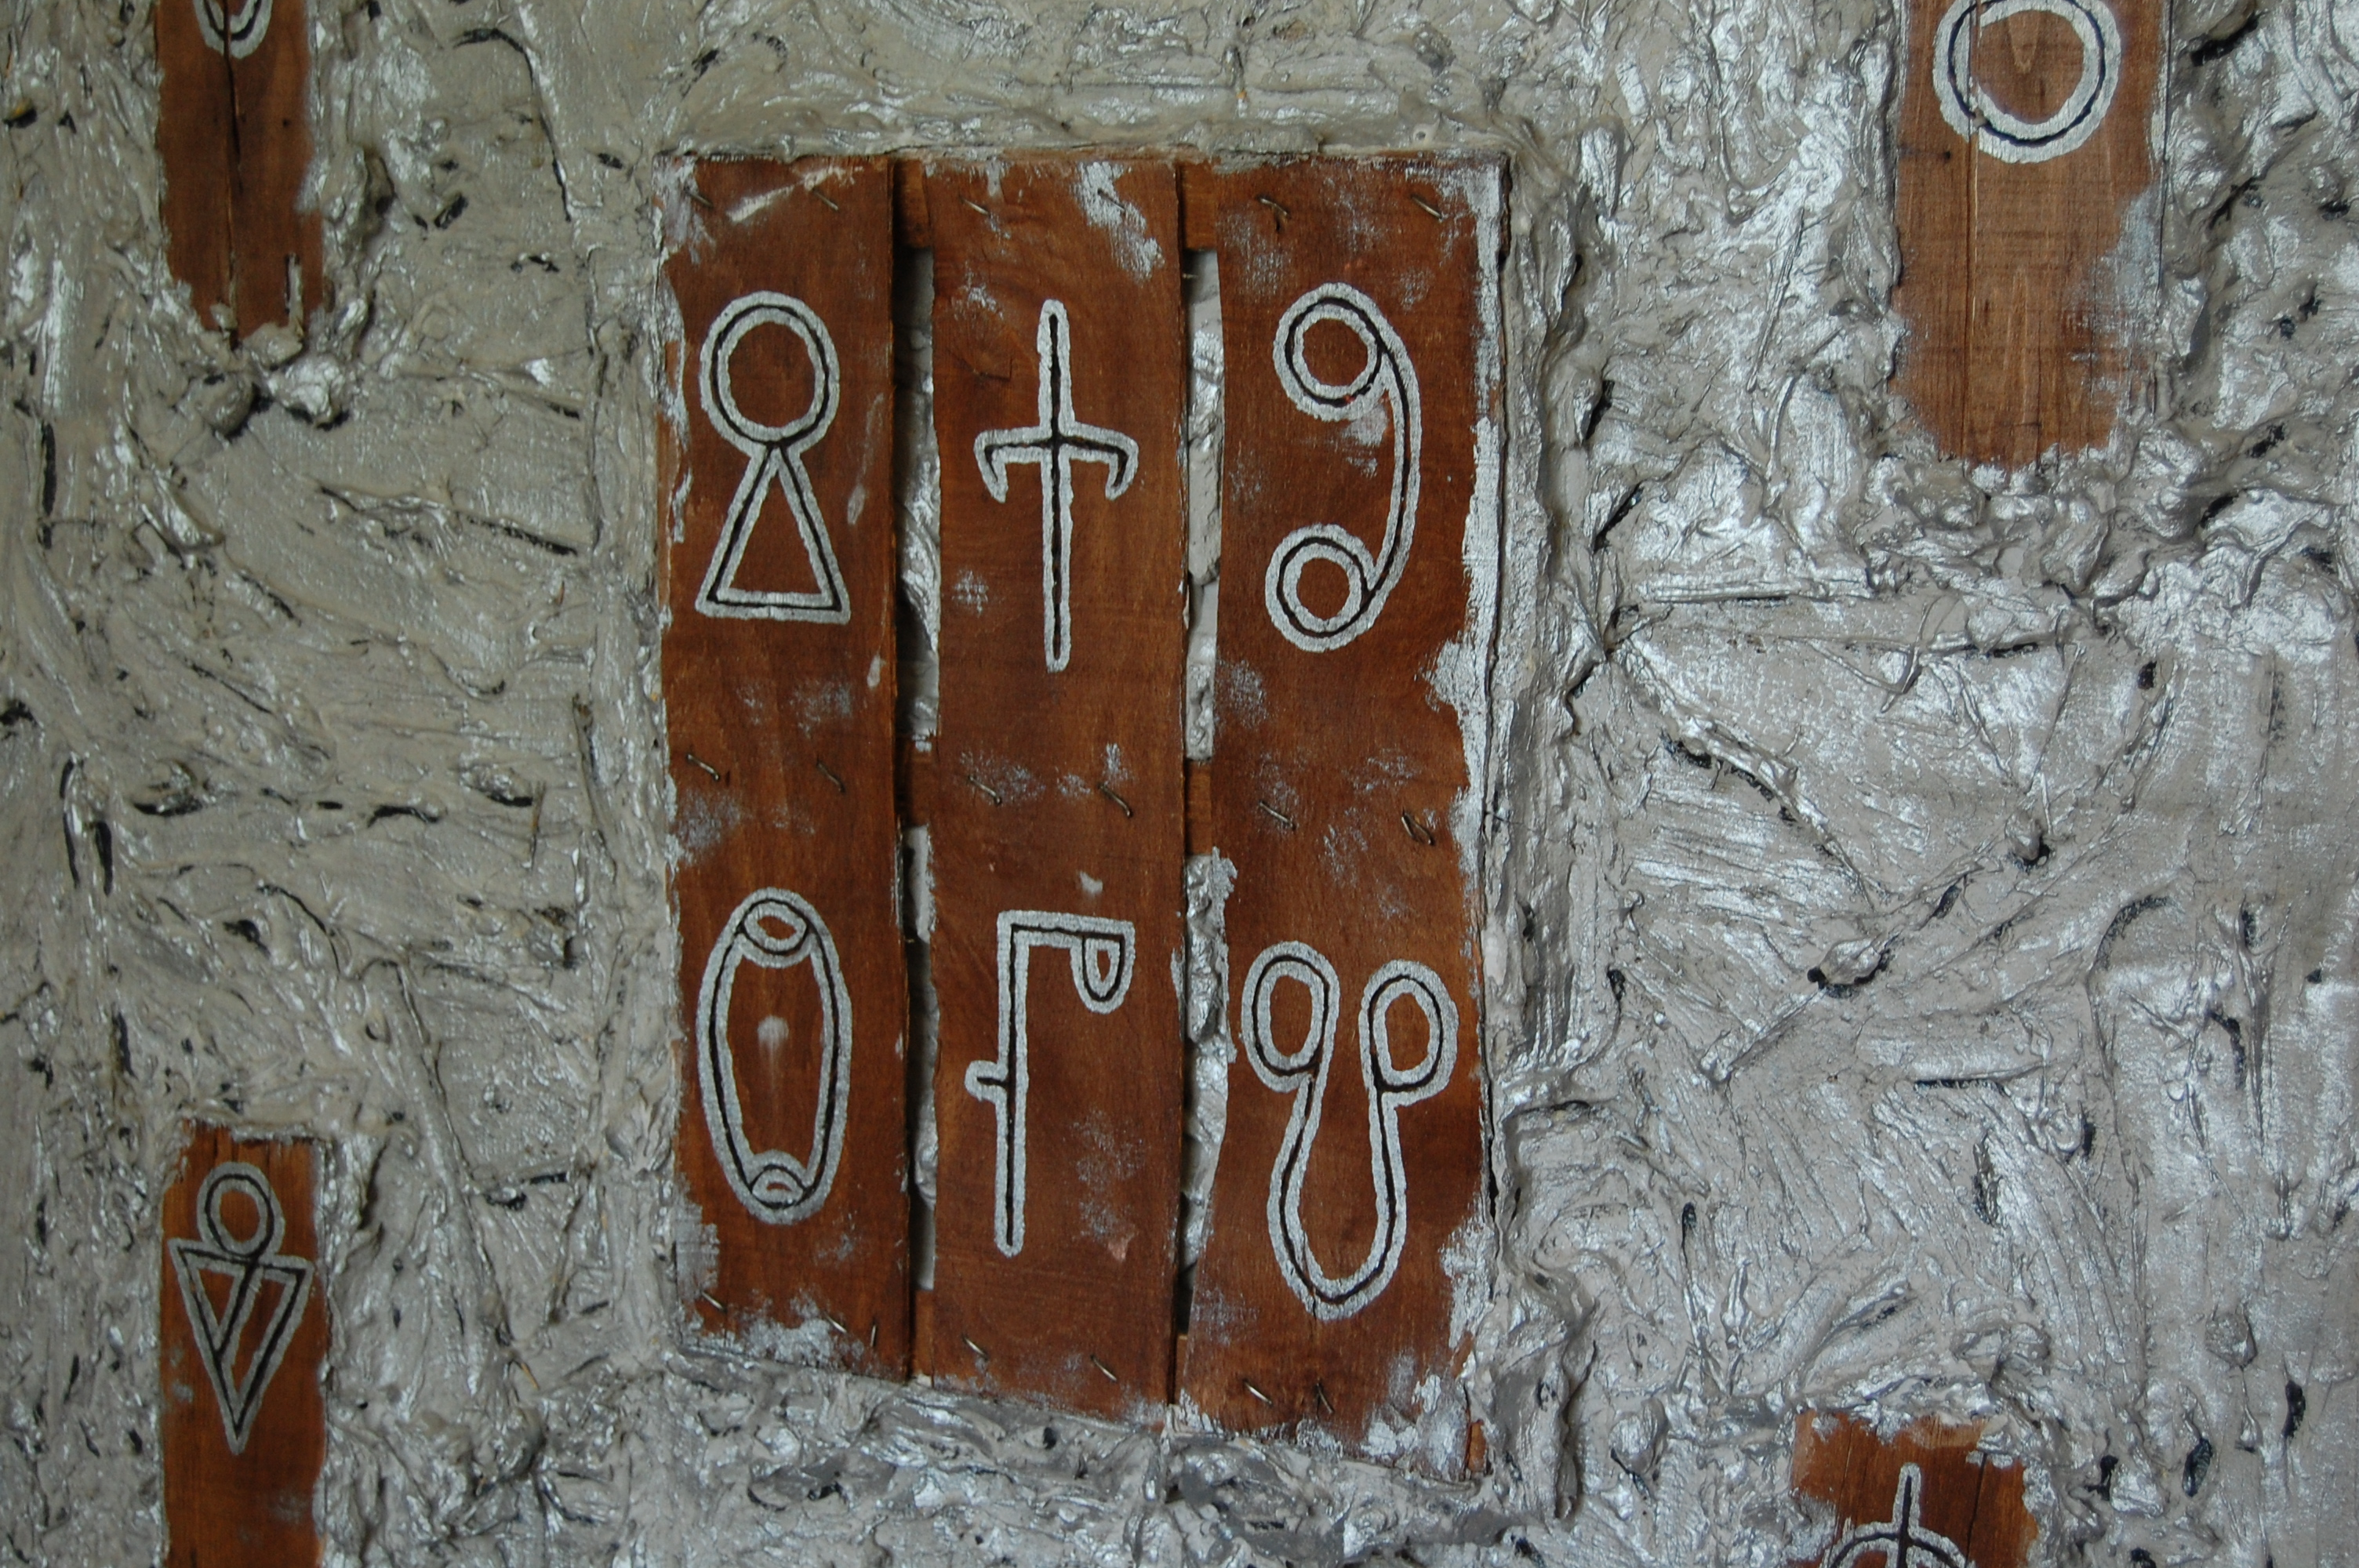 LETTERS FROM THE GLAGOLITIC ALPHABET - DSC_0033